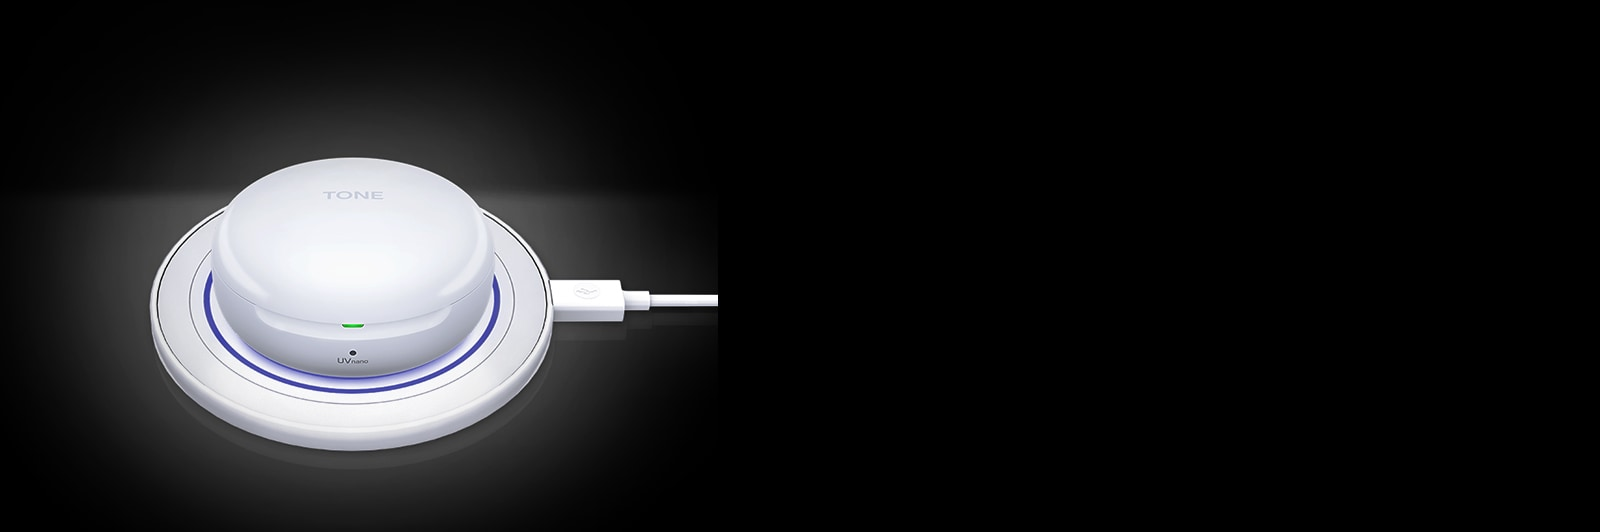 An image of a white LG TONE Free FN6 opened up charging on a white wireless charging pad.